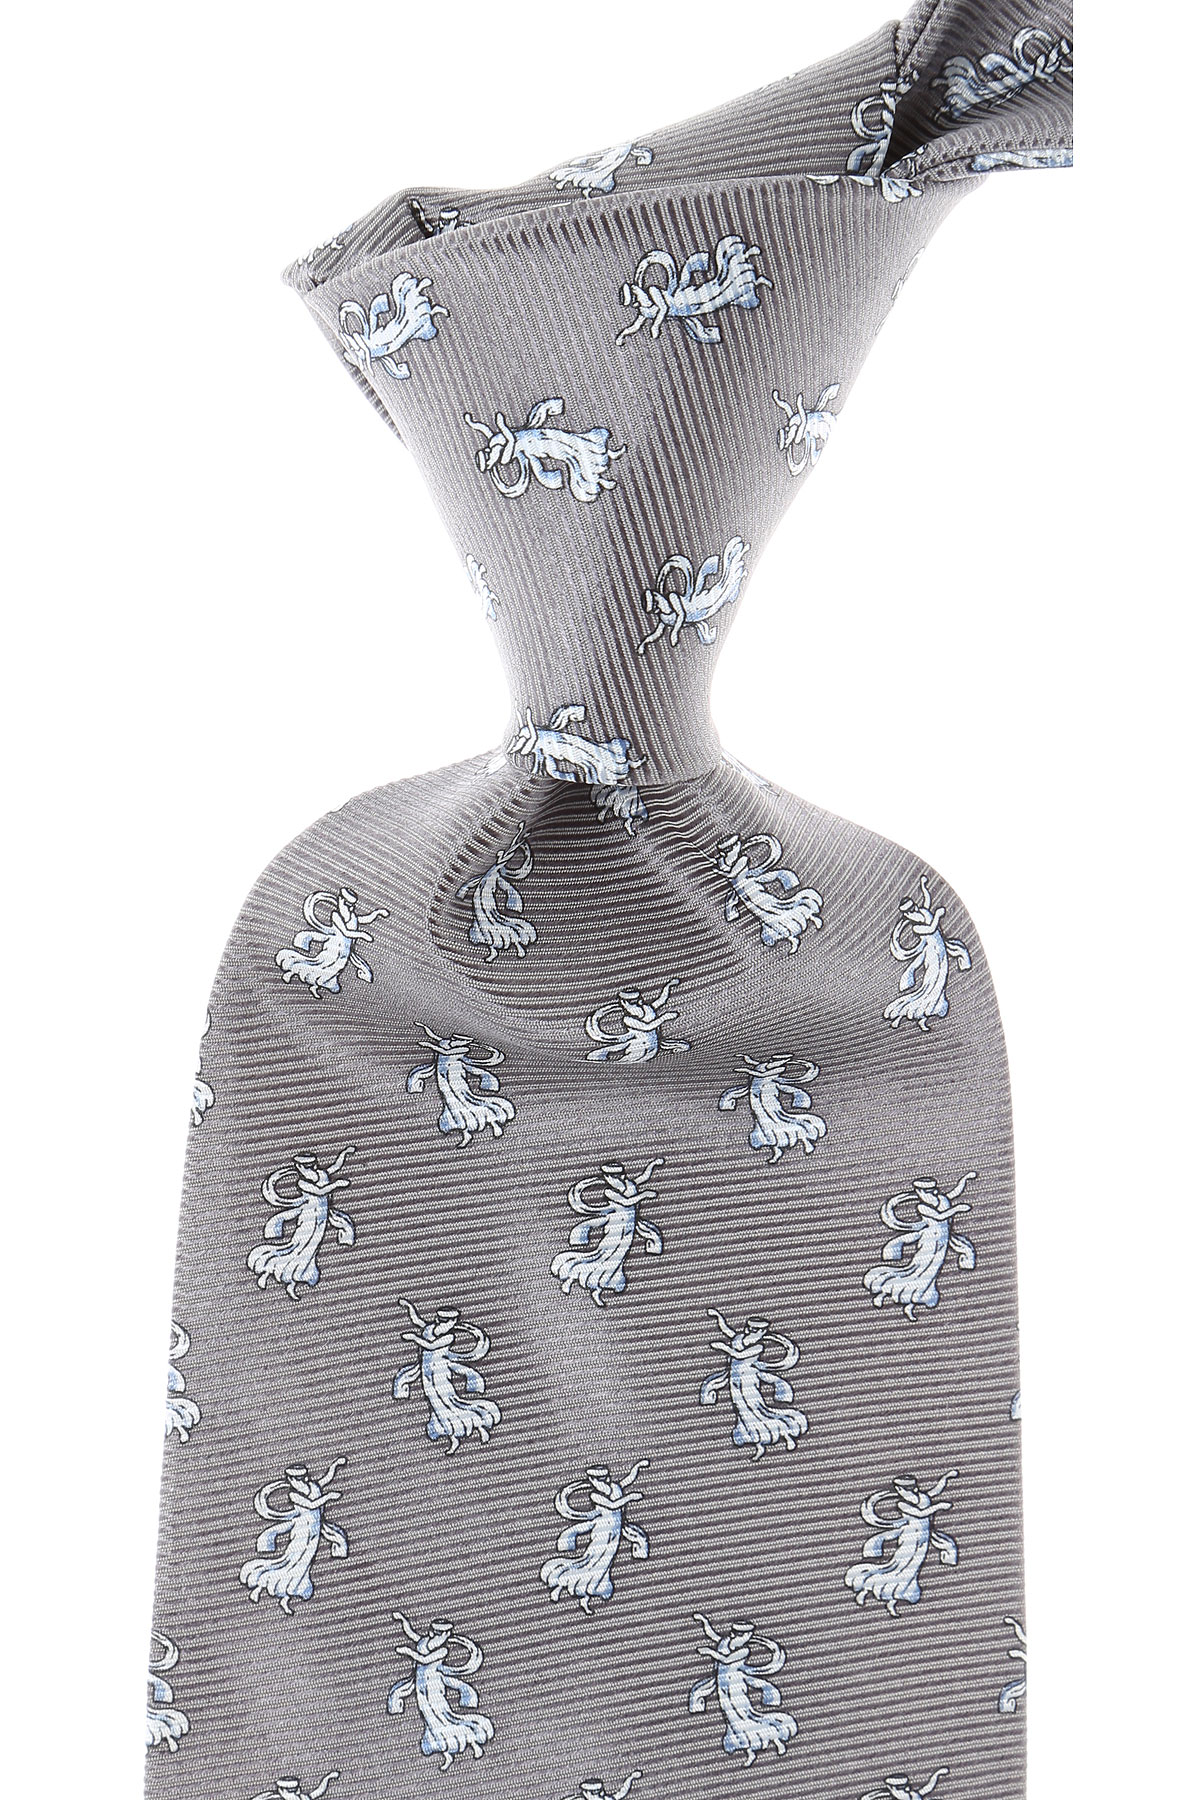 Balmain Ties On Sale, Dimgray, Silk, 2019